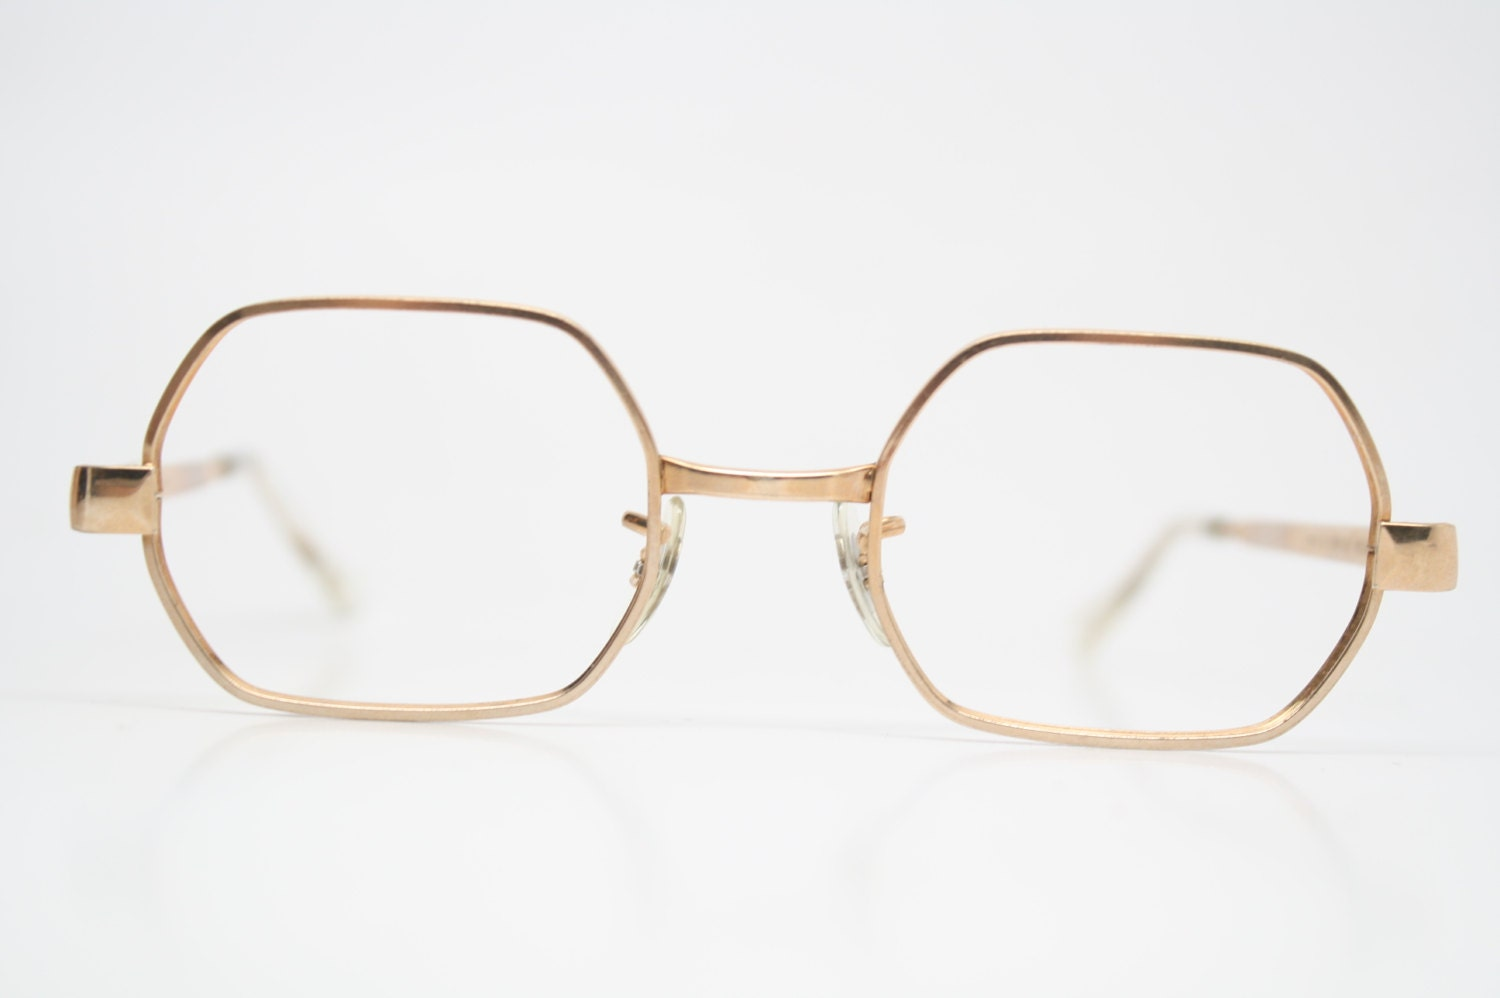 Eyeglass Frames Square : Antique Glasses Frames Square shaped 1/40 10k Gold vintage